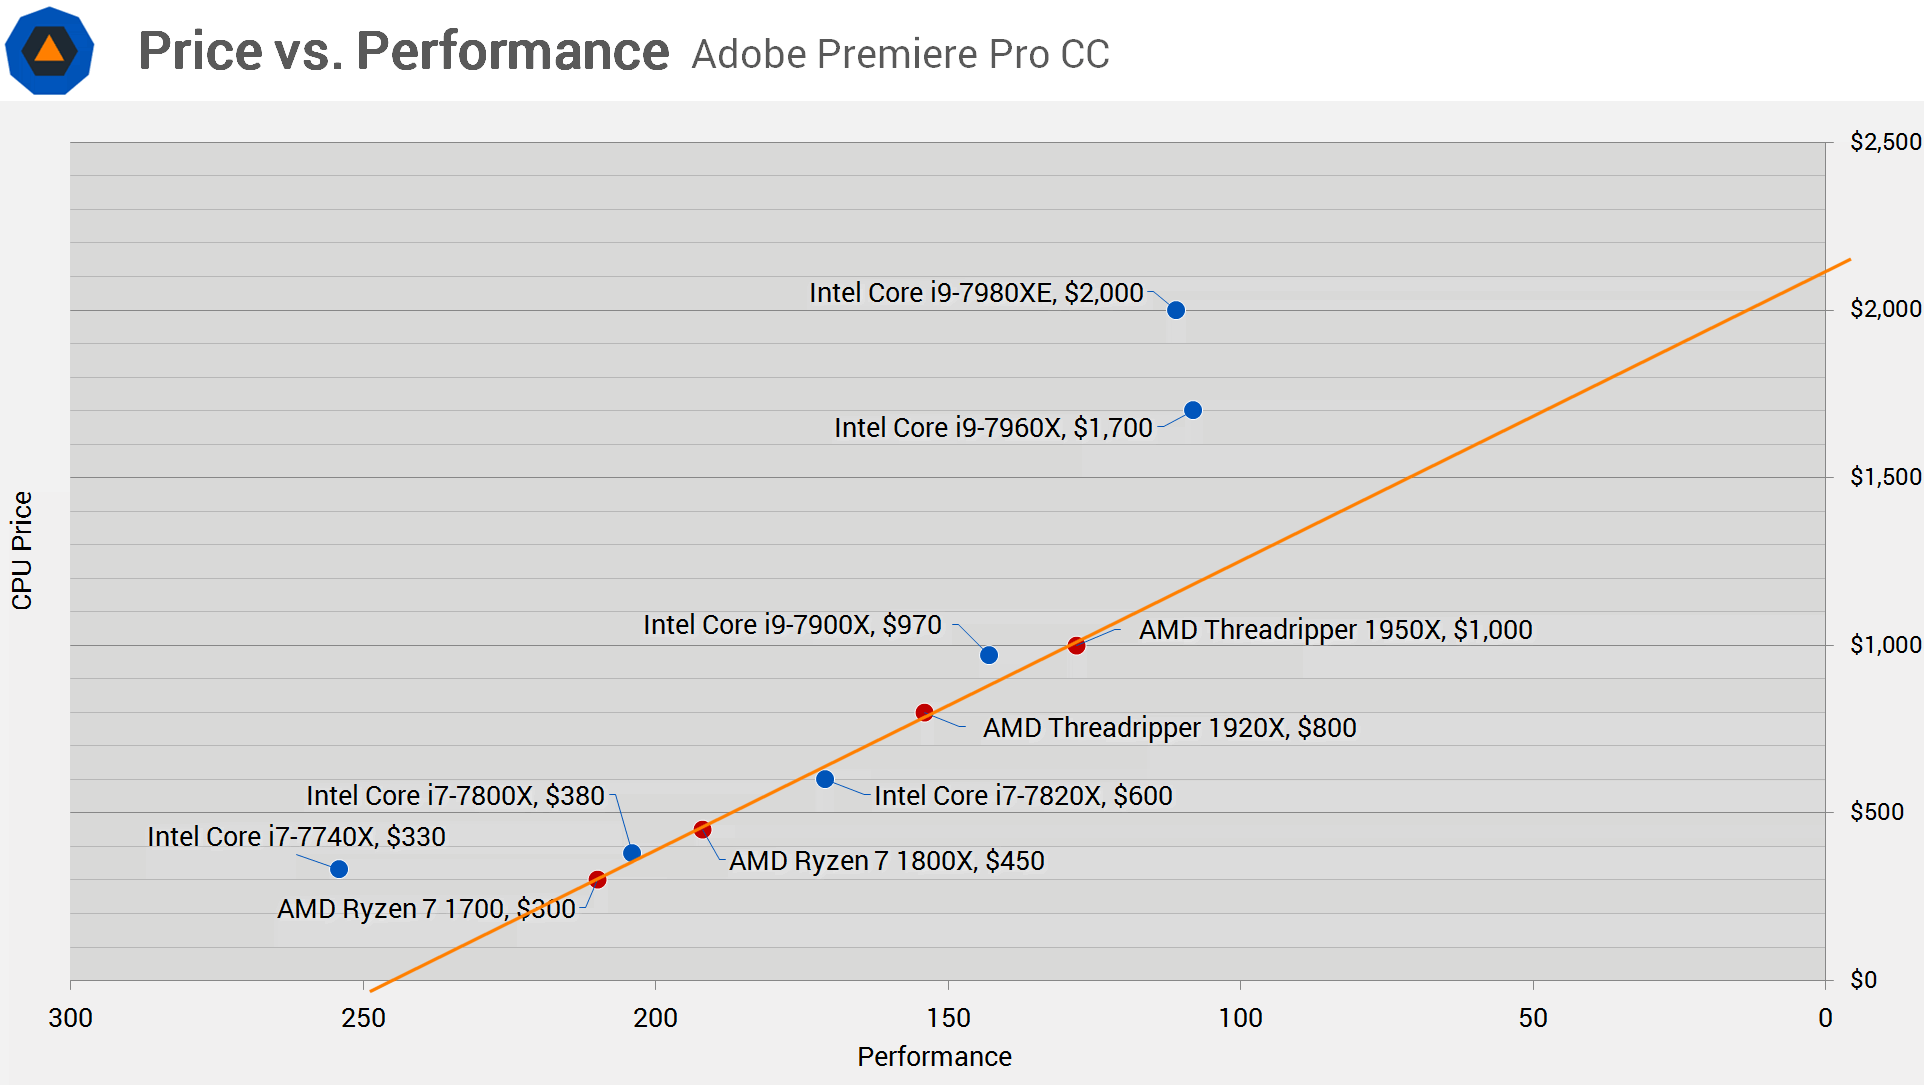 PricevPerf2.png